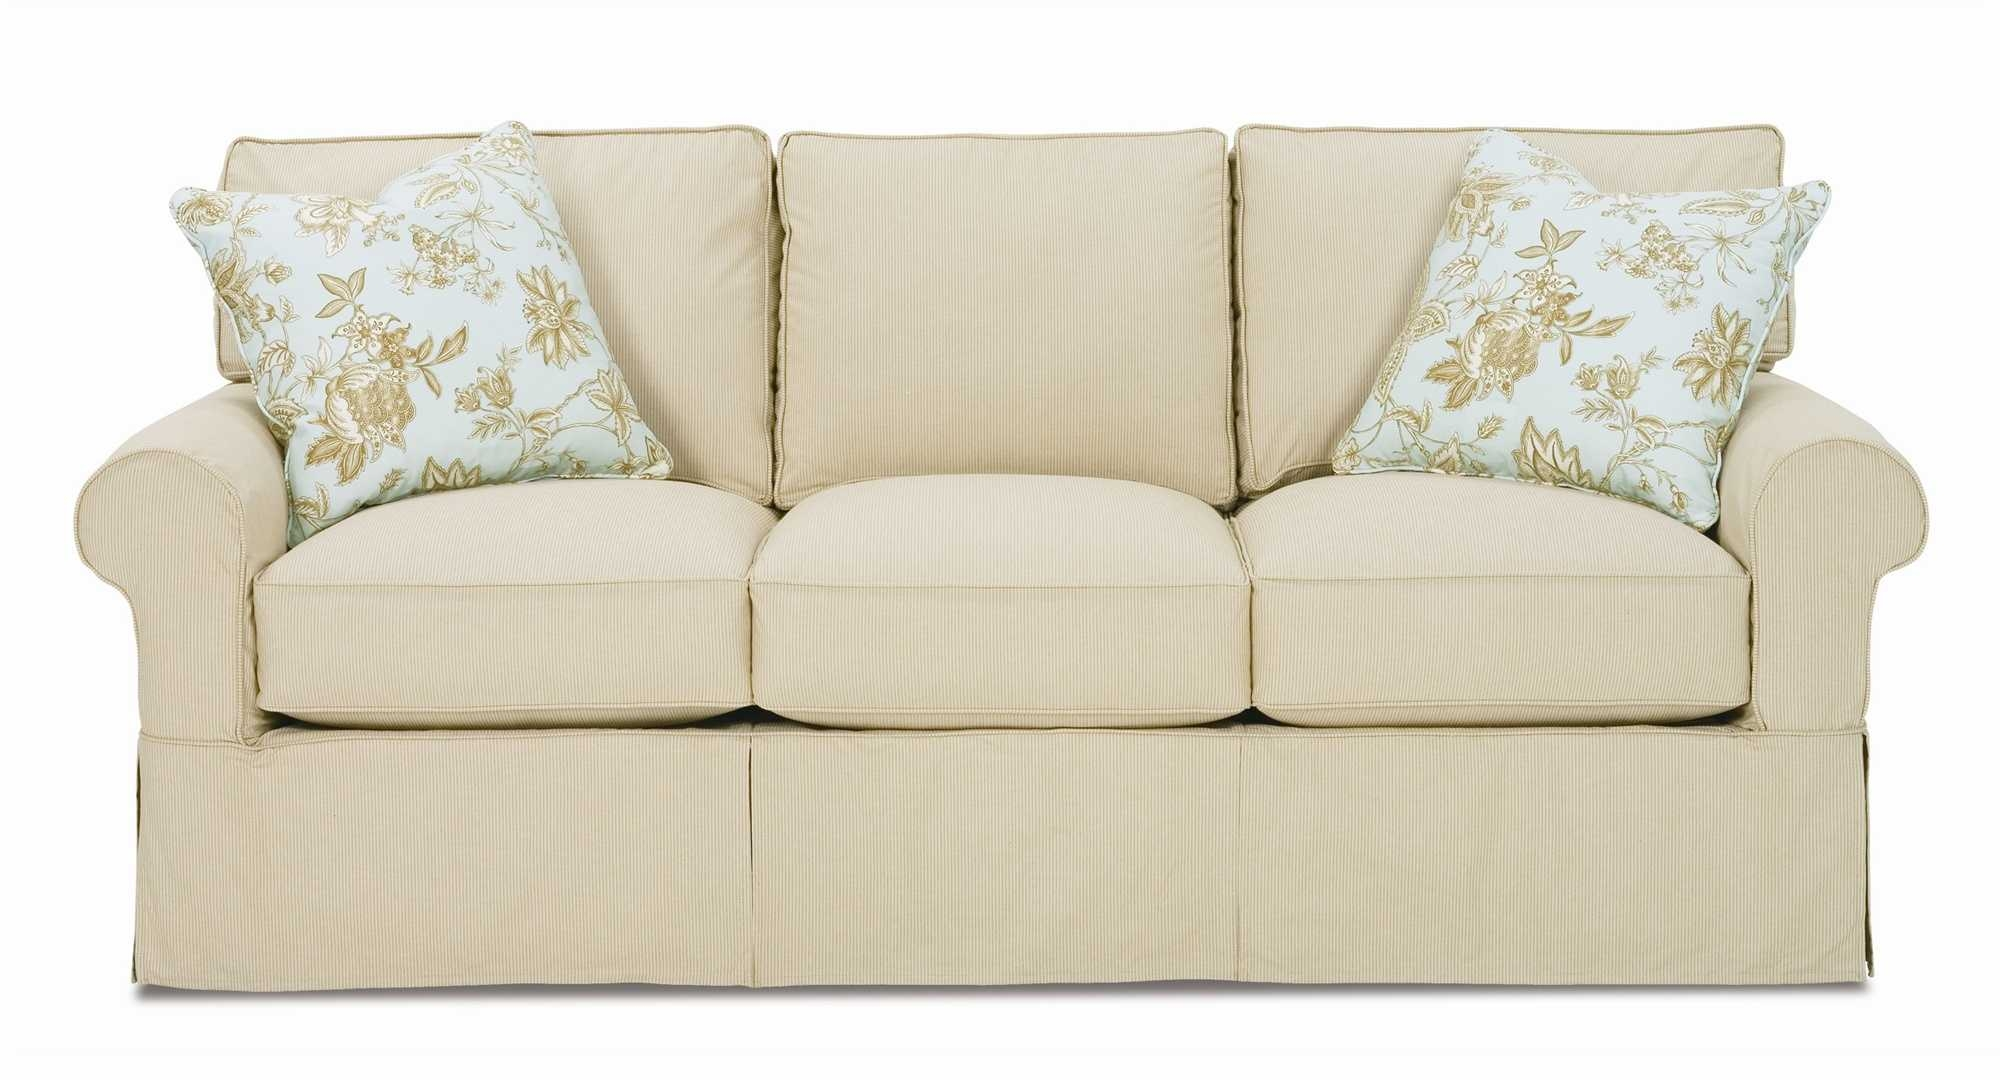 Slipcover For Sofa With Slipcovers For Sofas And Chairs (Image 8 of 15)